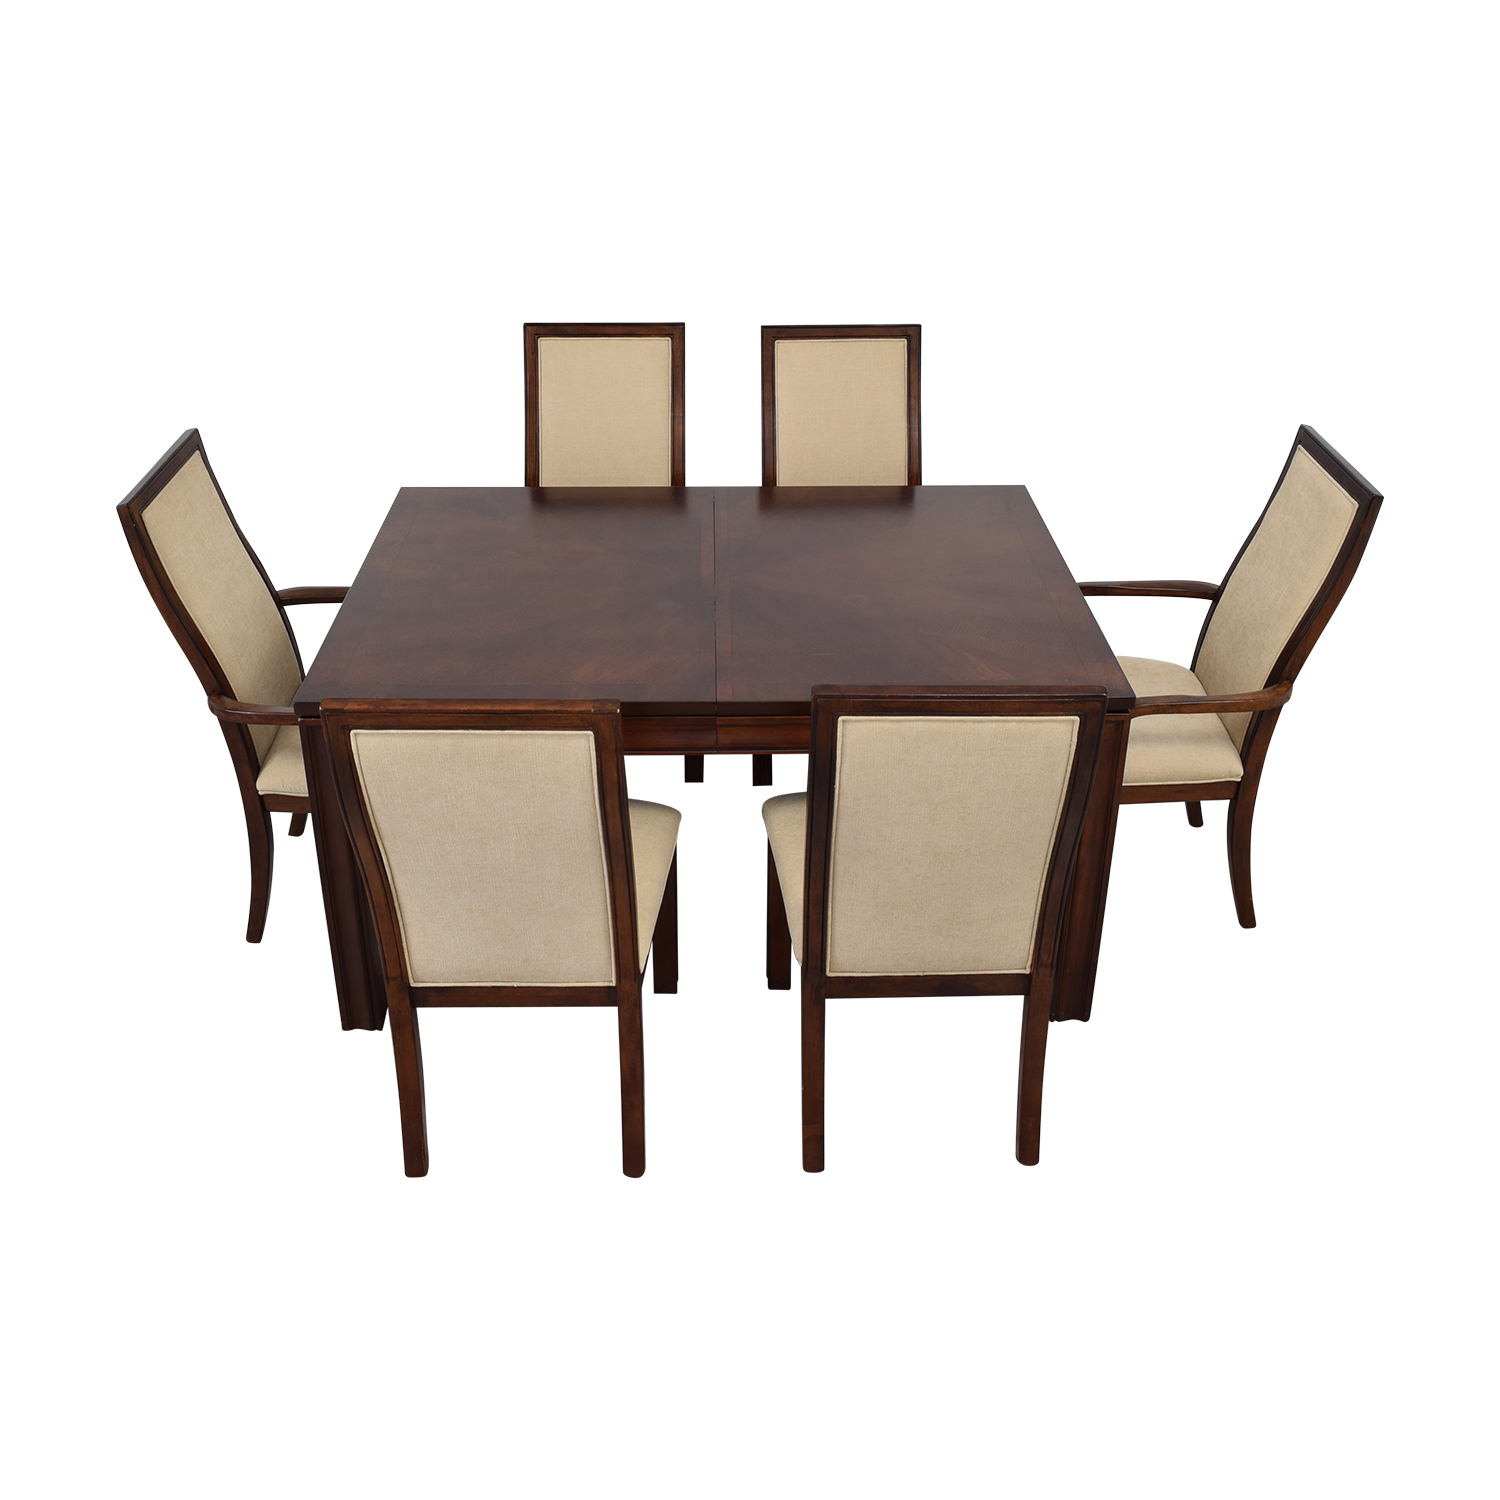 Macy's Macy's Extendable Wood Dining Set for sale